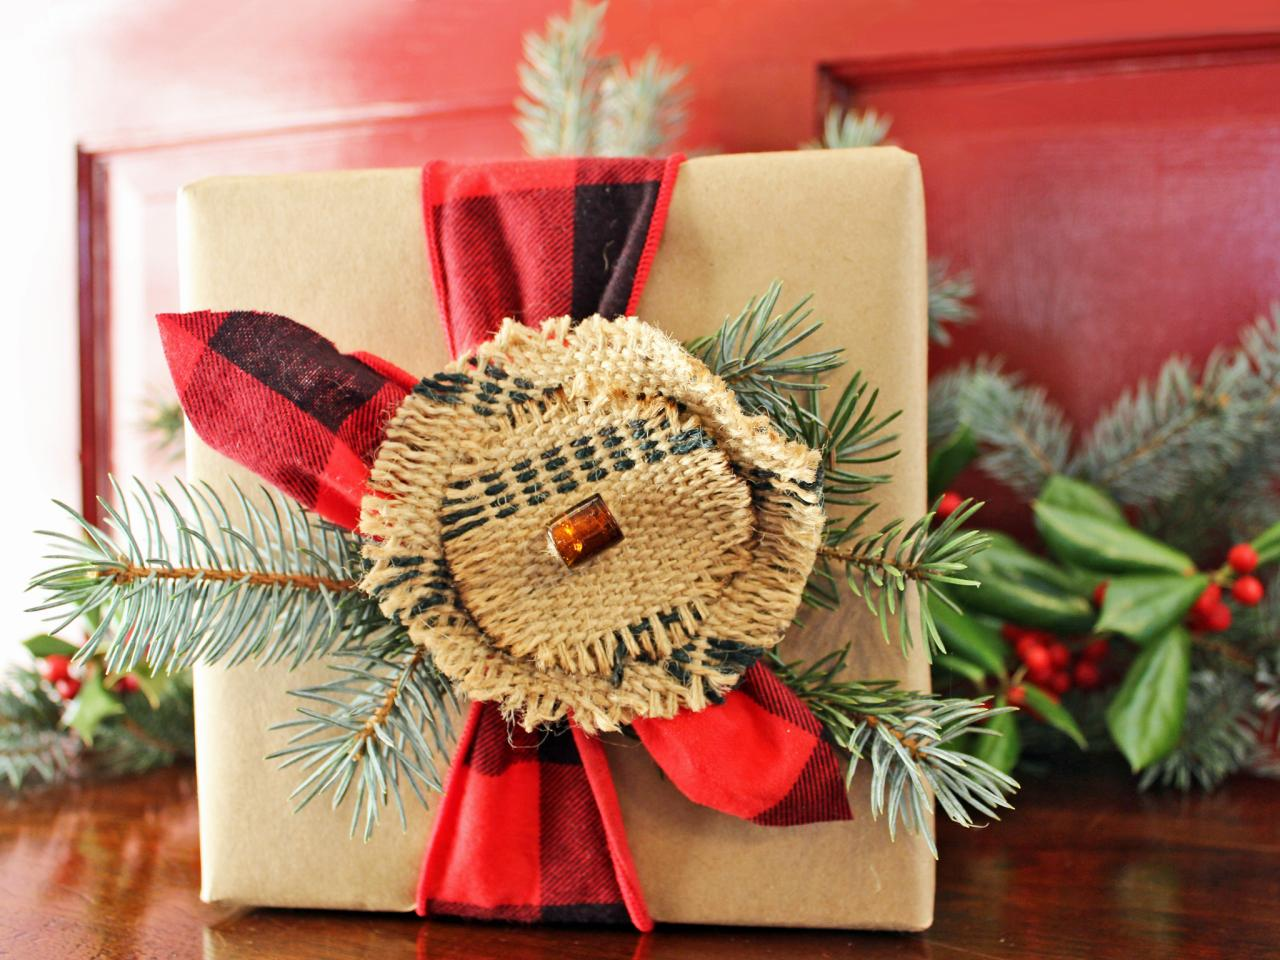 Weihnachten Dekoration Real Wrap Ur Loved One 39s Gifts With Beautiful Gift Packing